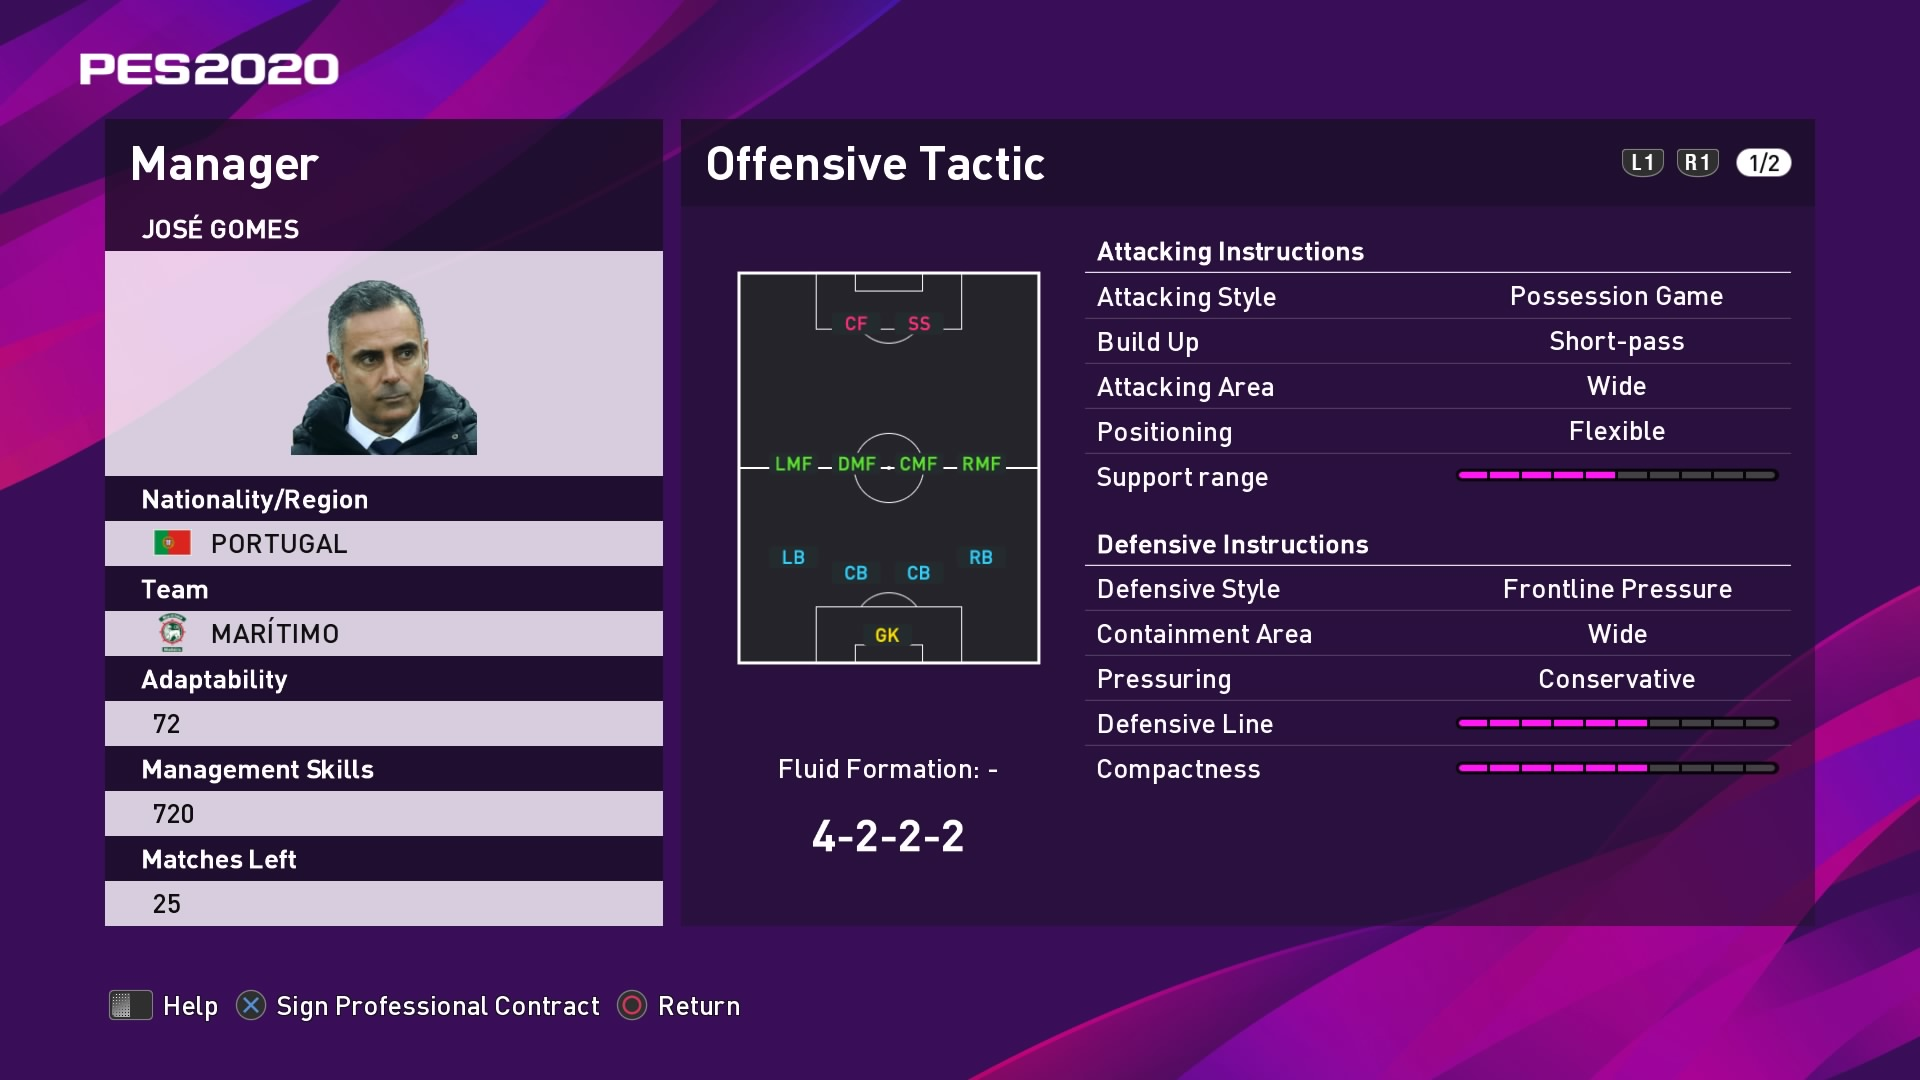 José Gomes Offensive Tactic in PES 2020 myClub